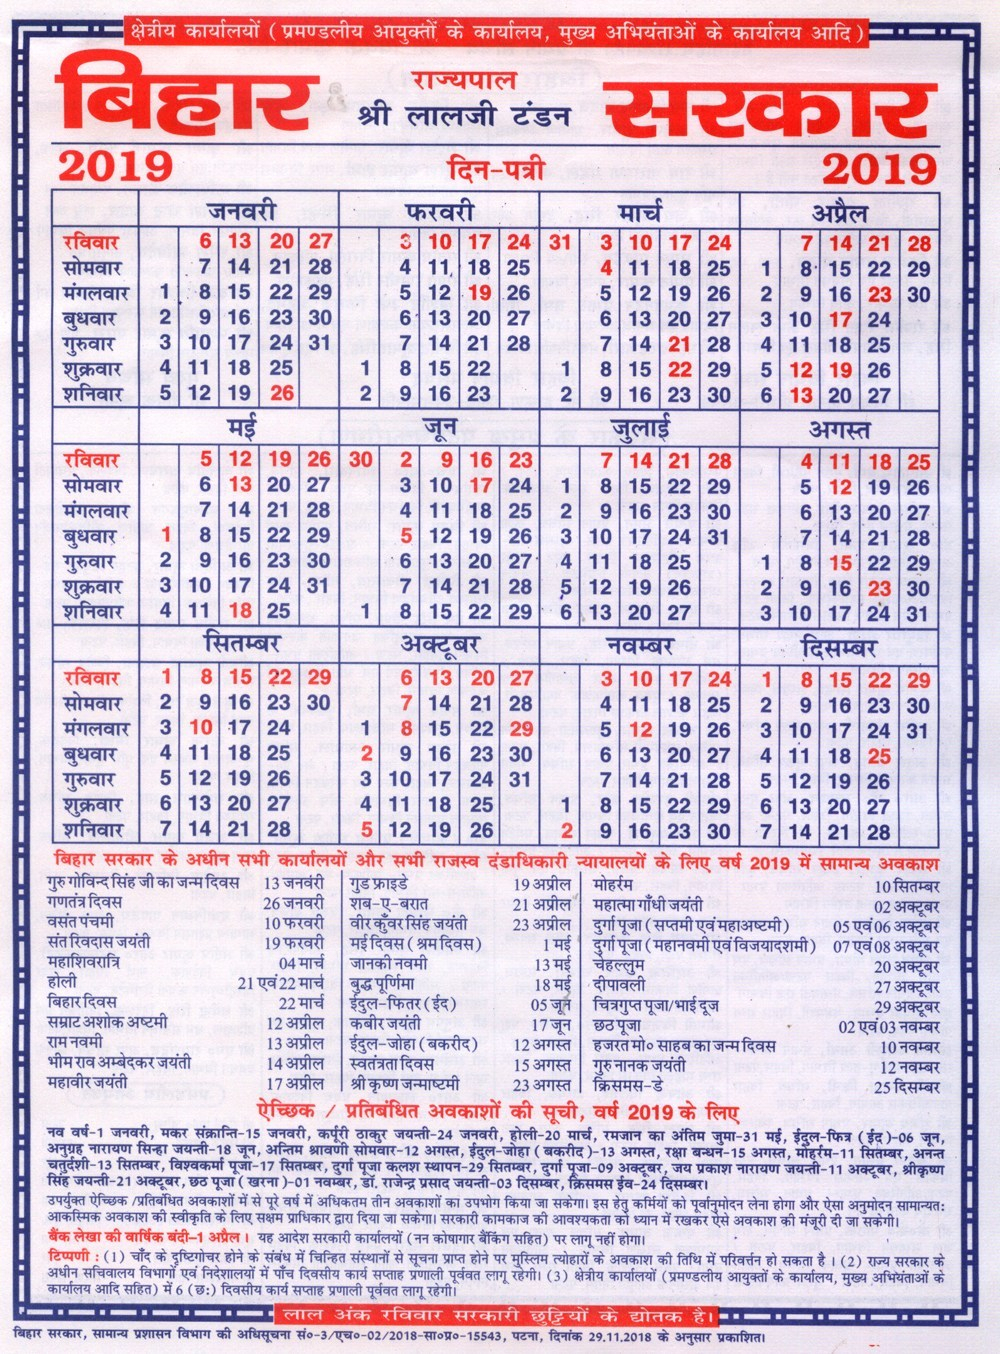 Bihar_Government_Calendar2019 | Bihar School throughout 2020 Bihar Government Calendar